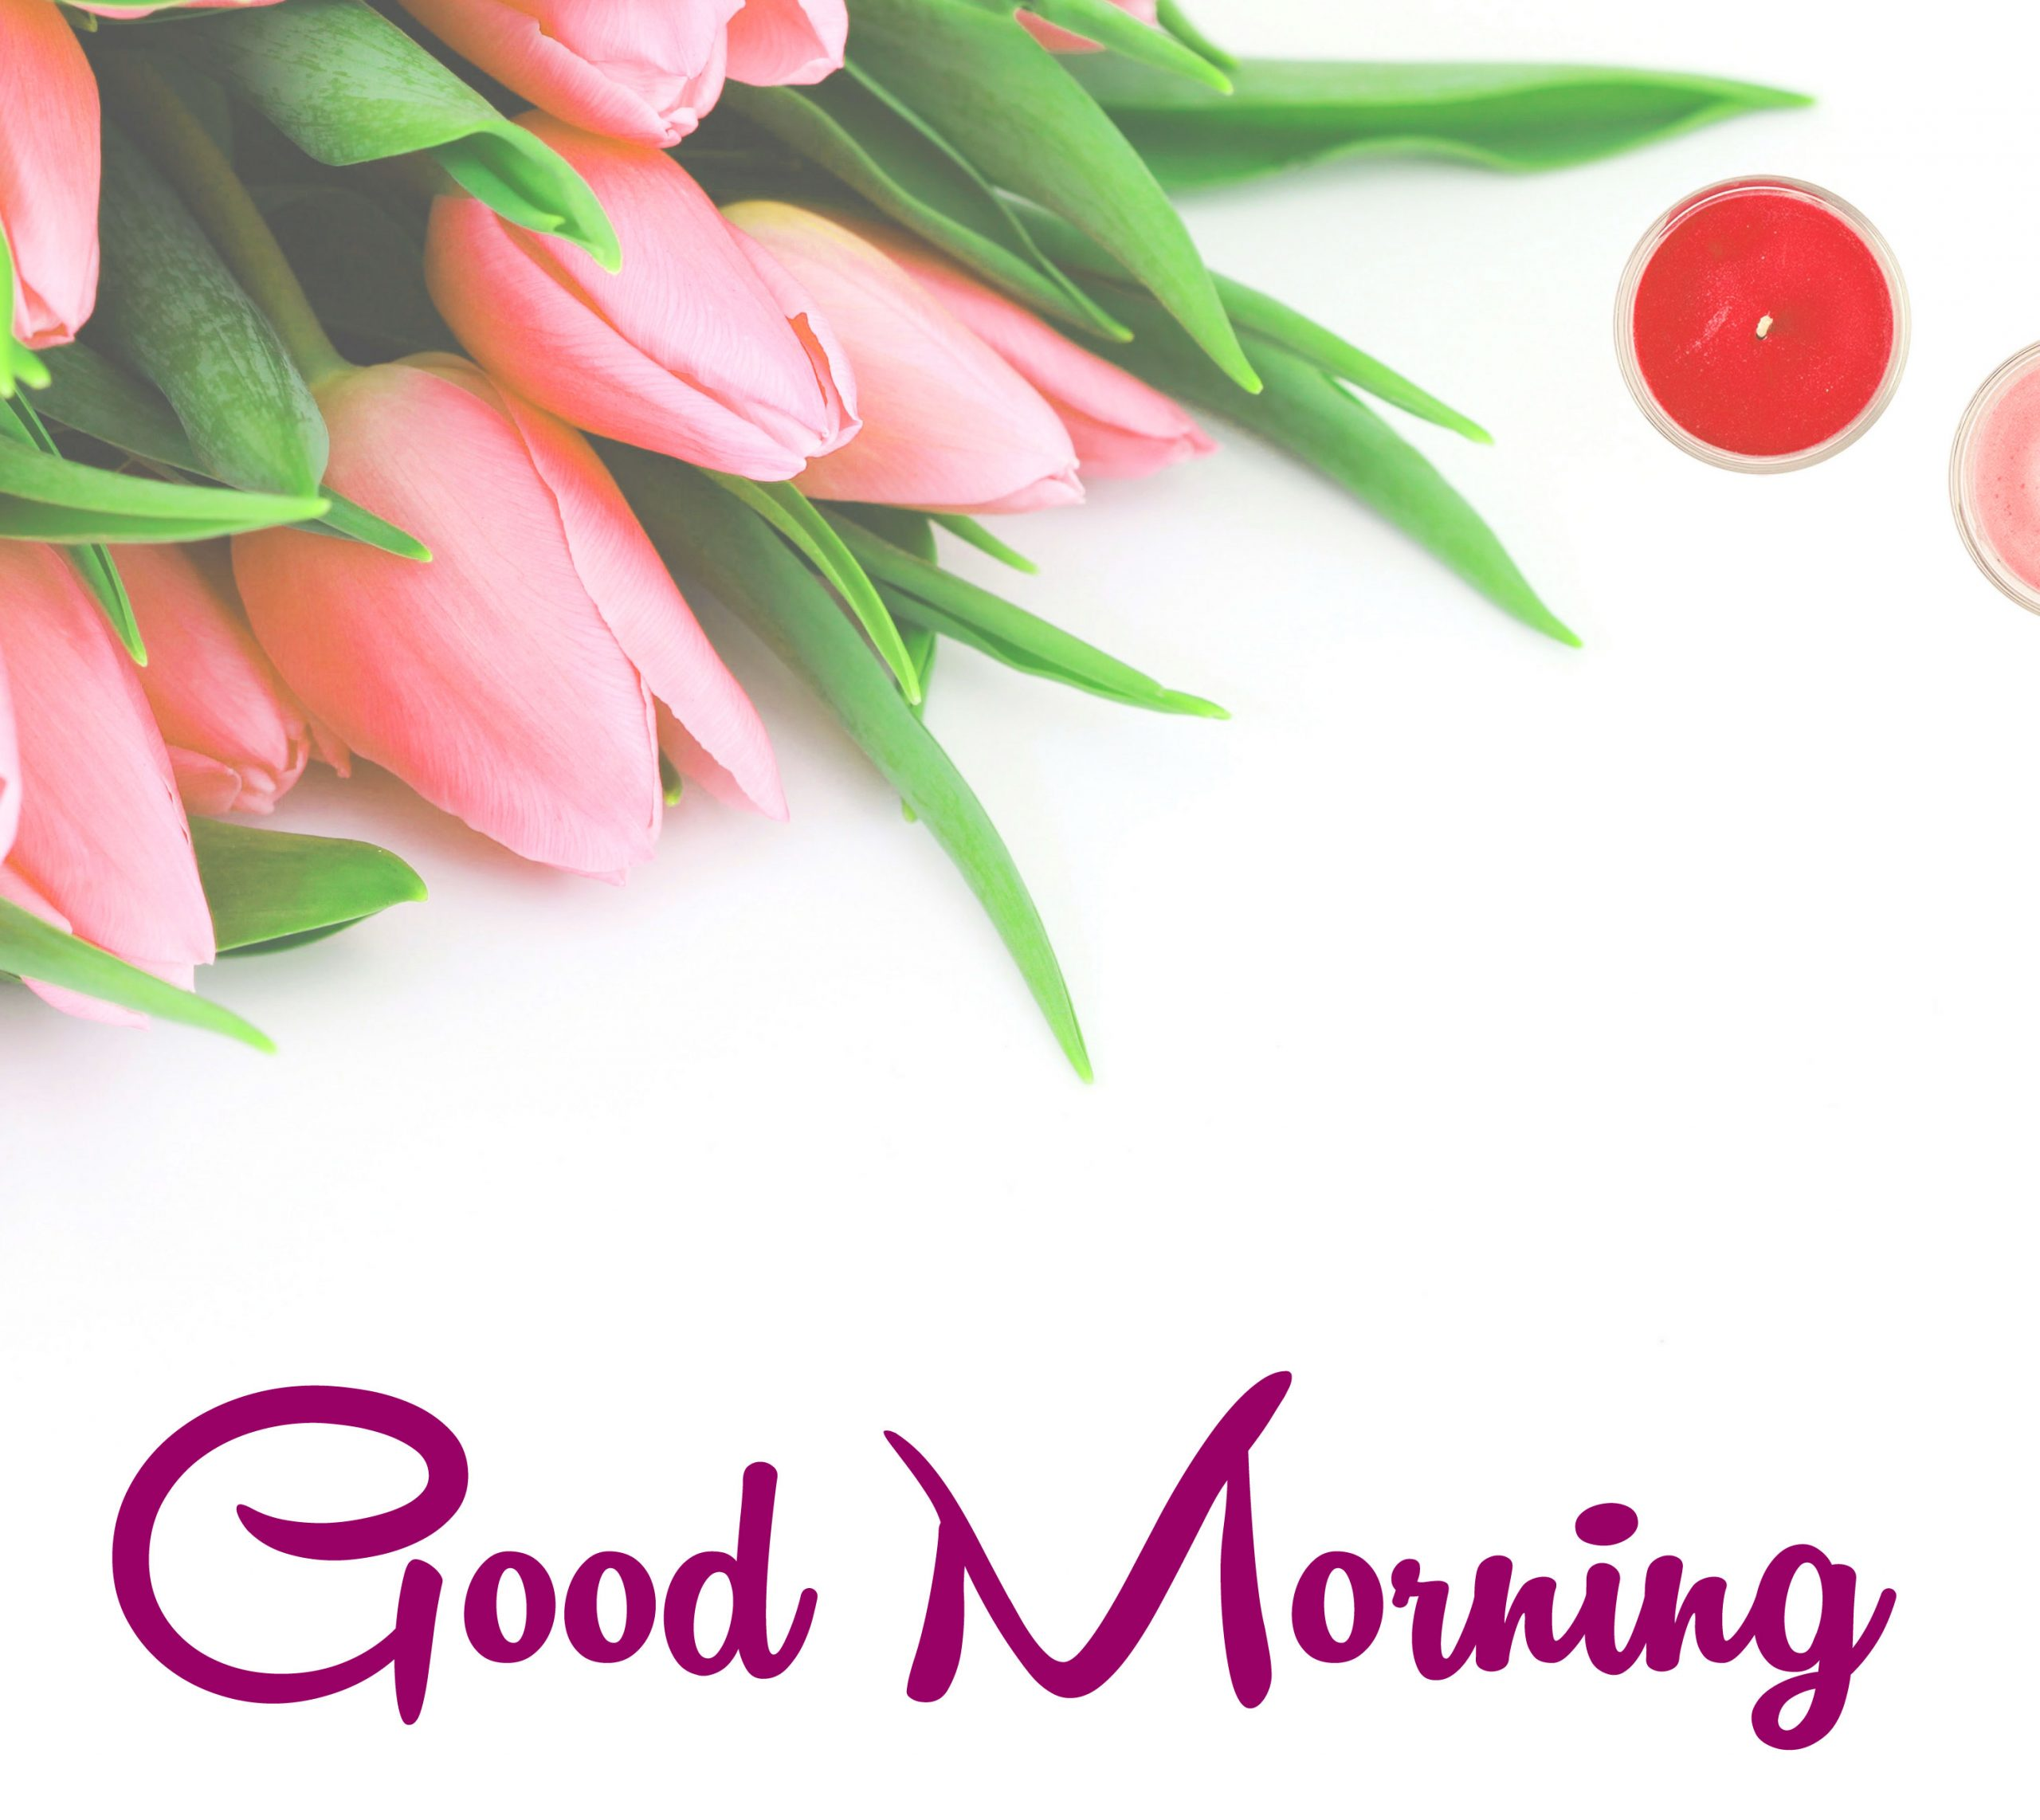 188+ Good Morning flowers and nature images and wallpaper (Latest images)